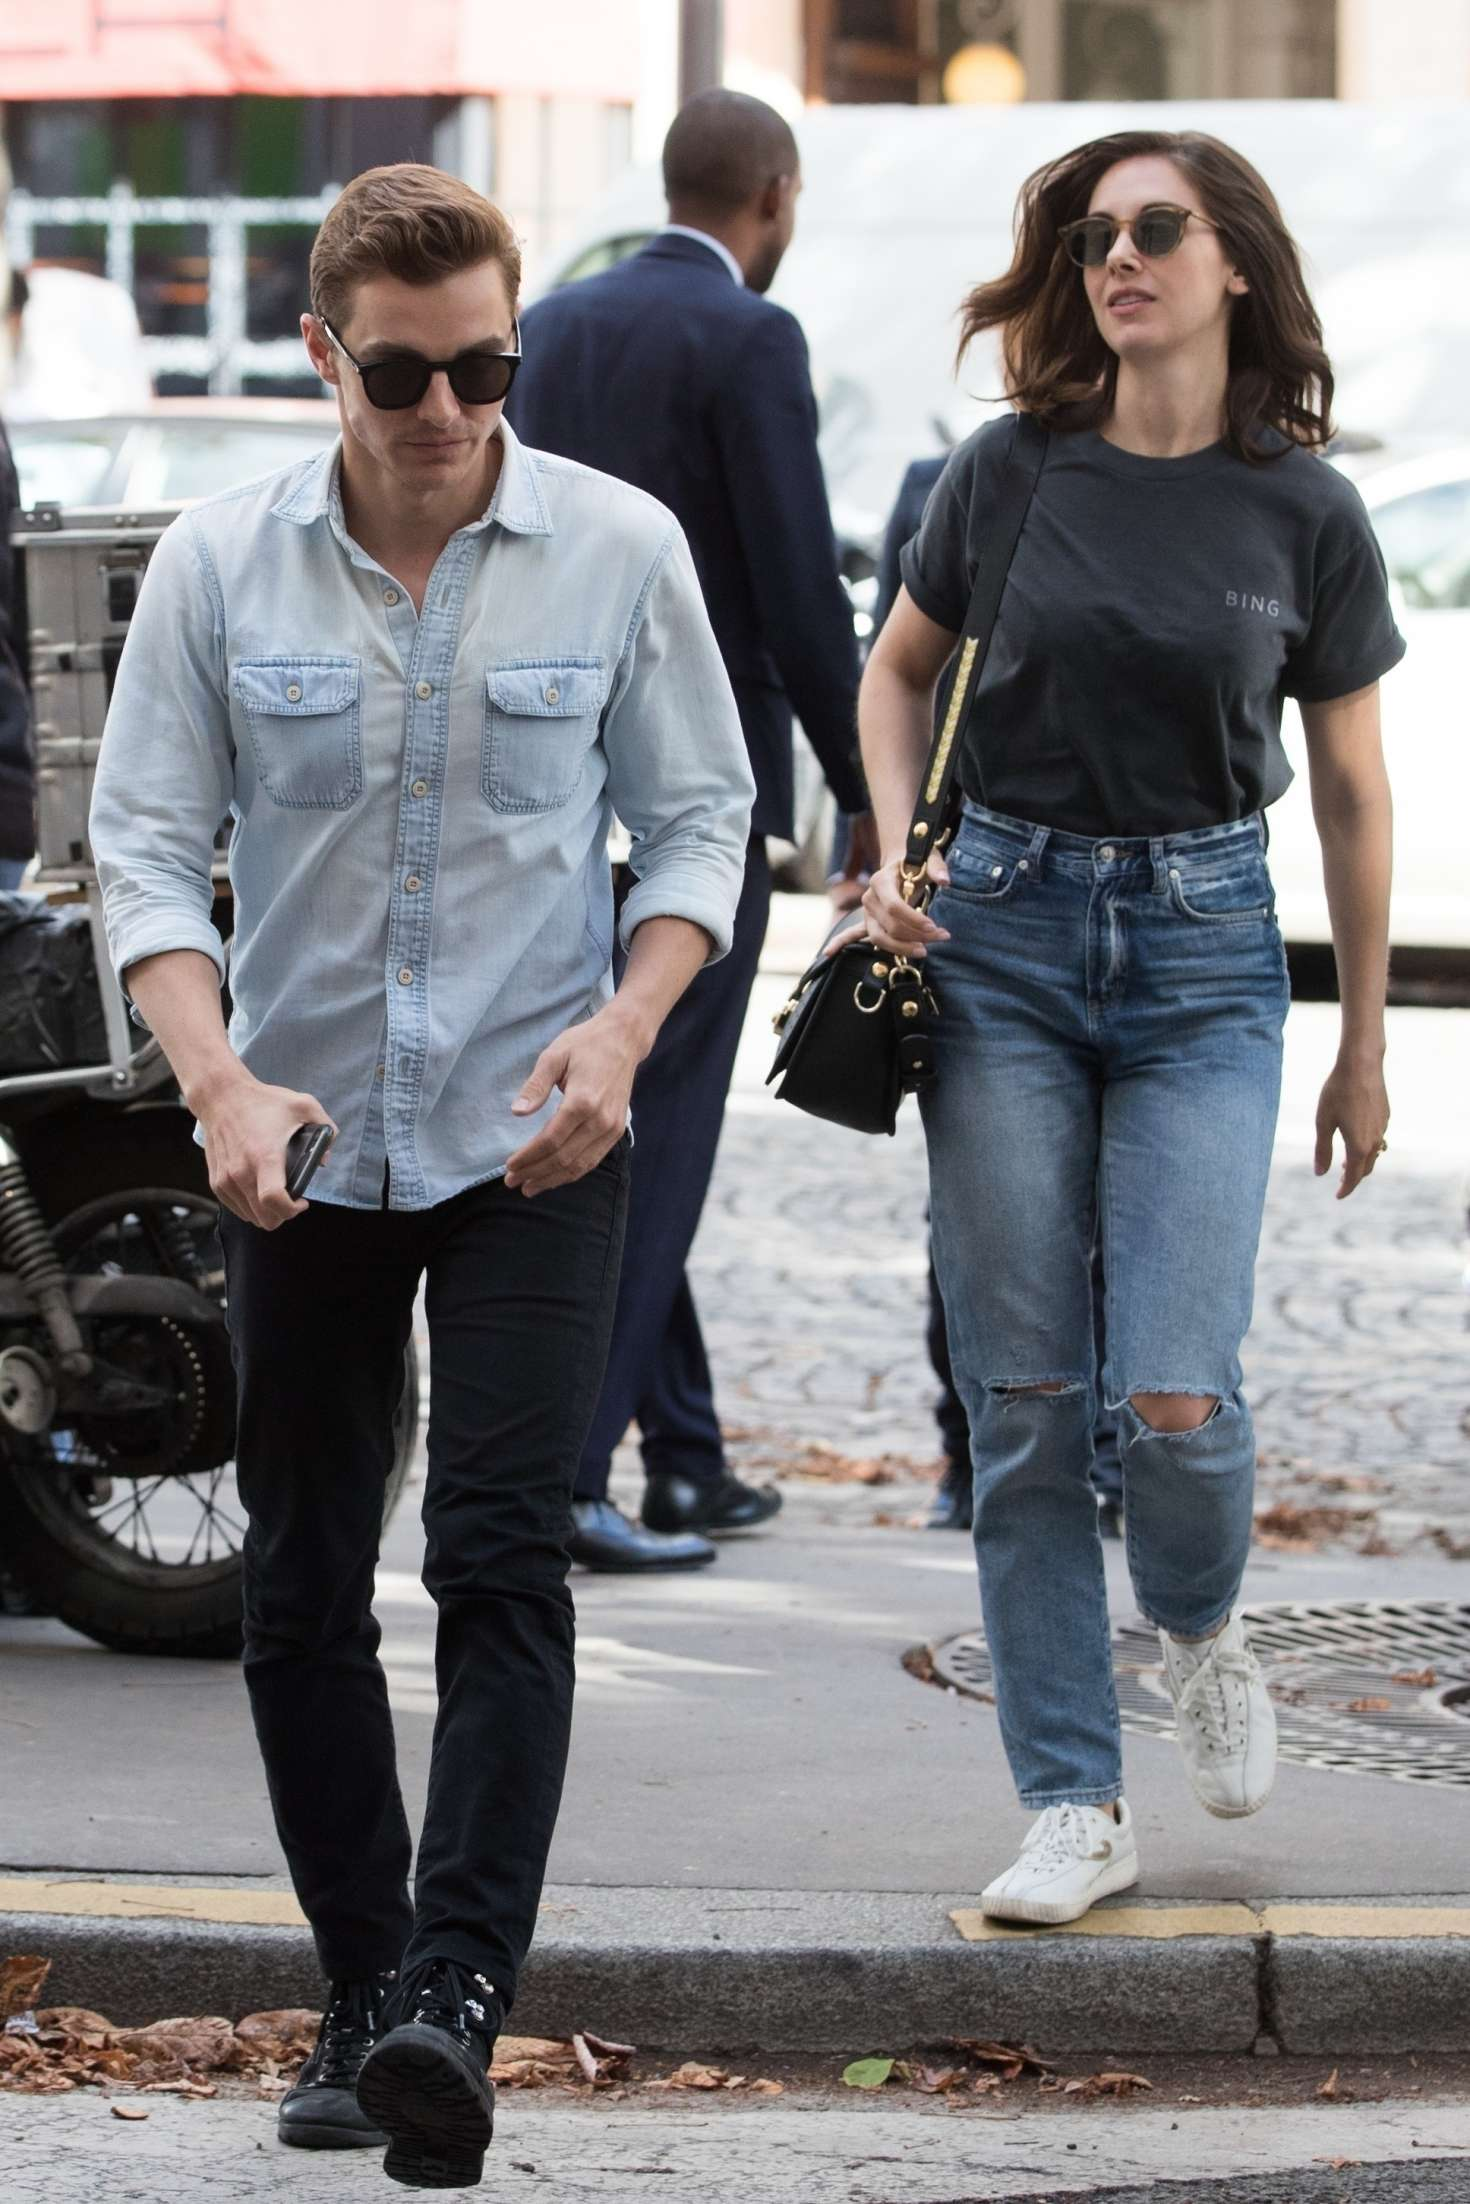 Alison Brie and Dave Franco - Arrive in Paris